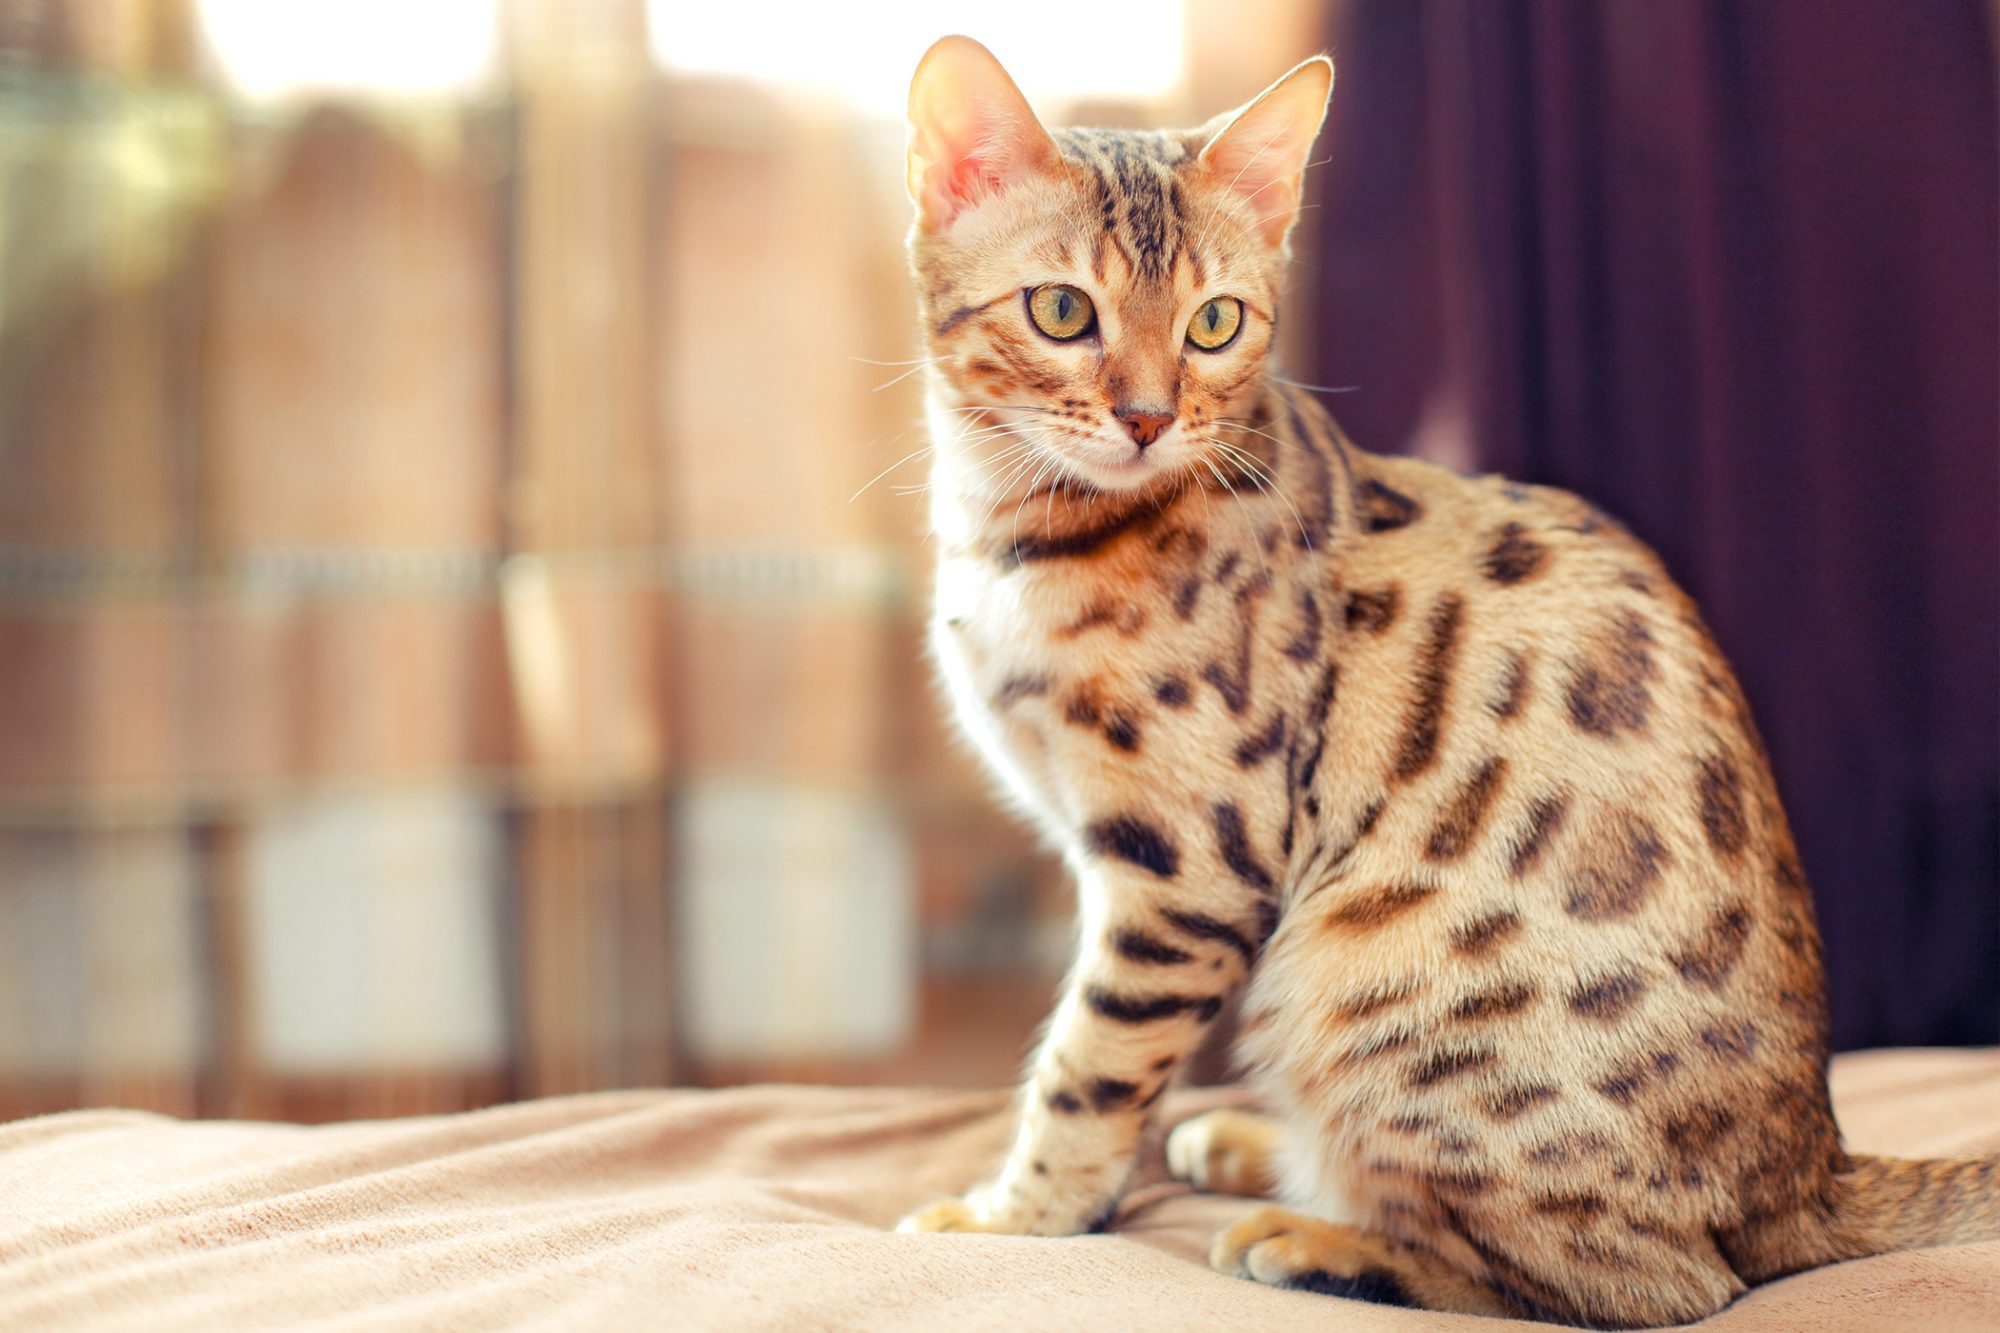 Cream Bengal cat sits on bed; purple curtain in background